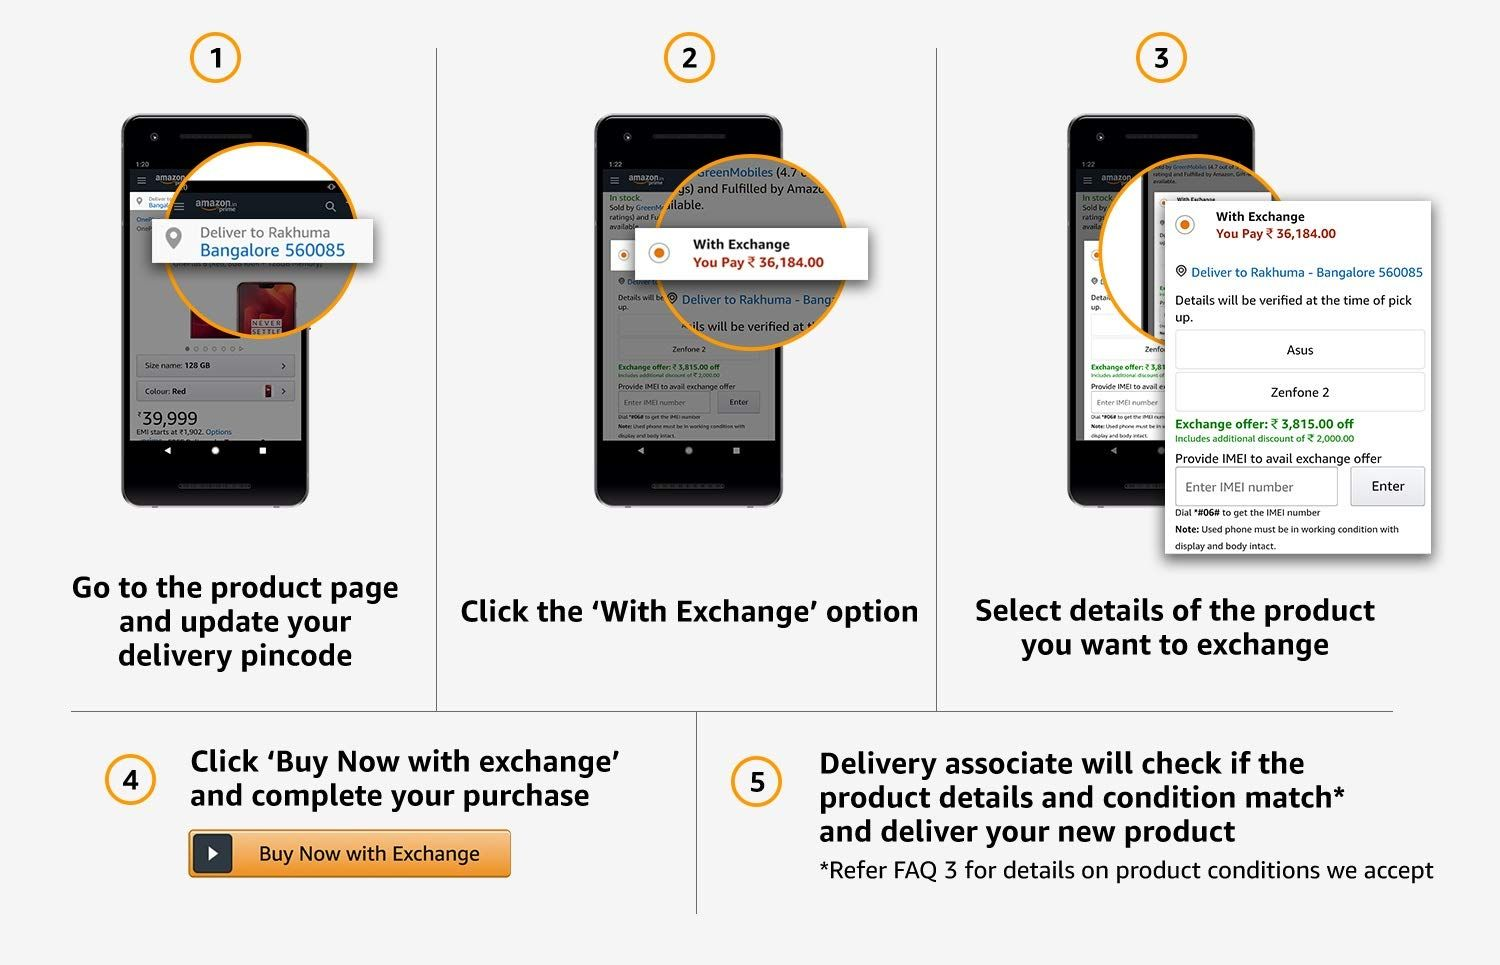 The process to avail Amazon Exchange Offer is pretty simple